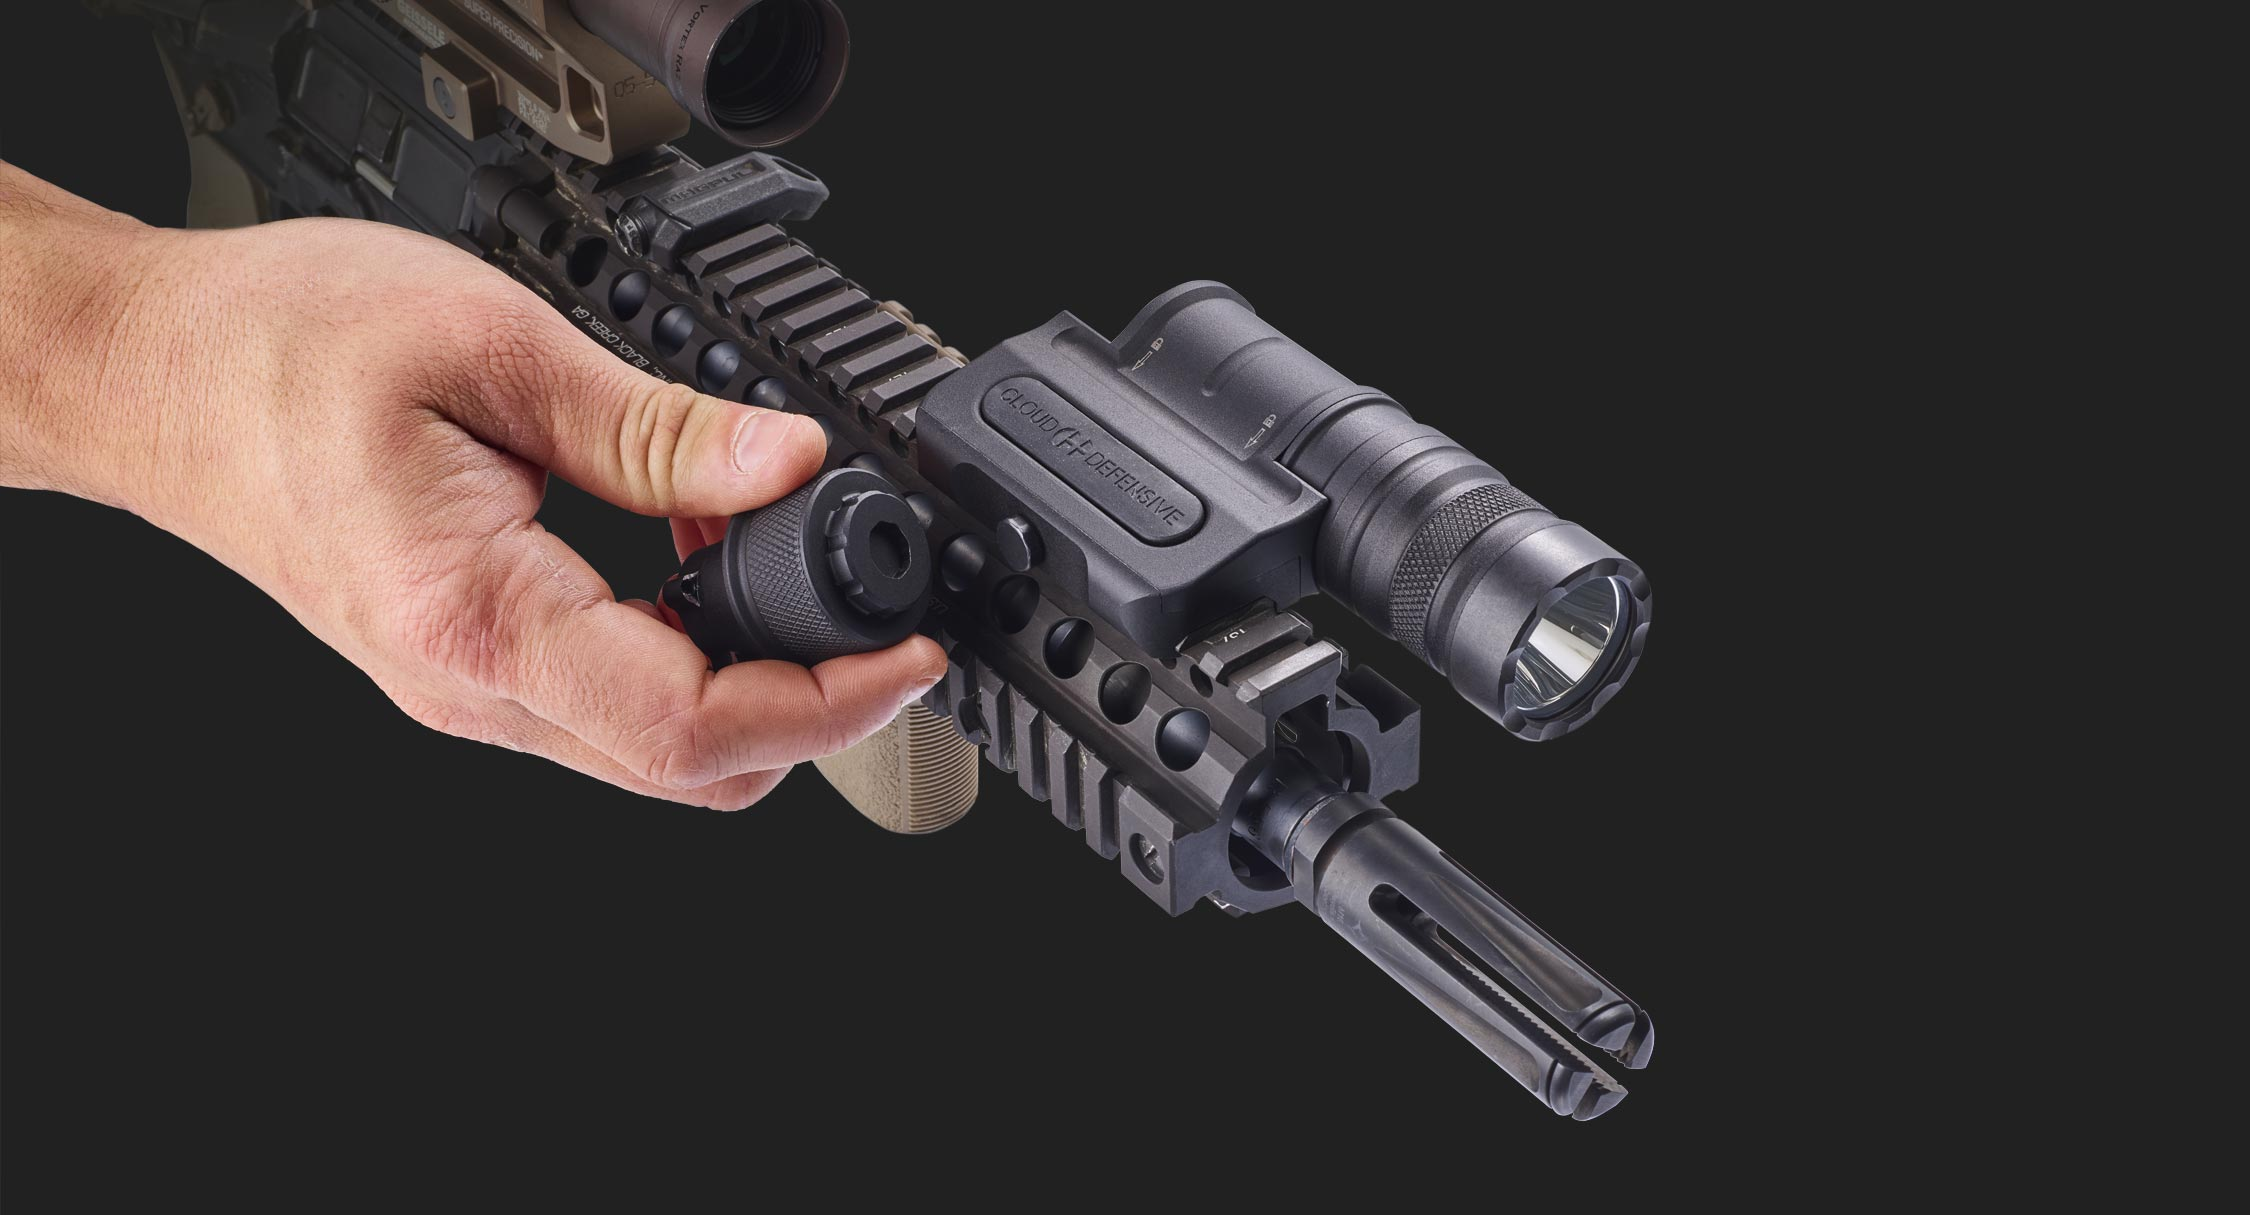 Optimized Weapon Light Integrated Tool